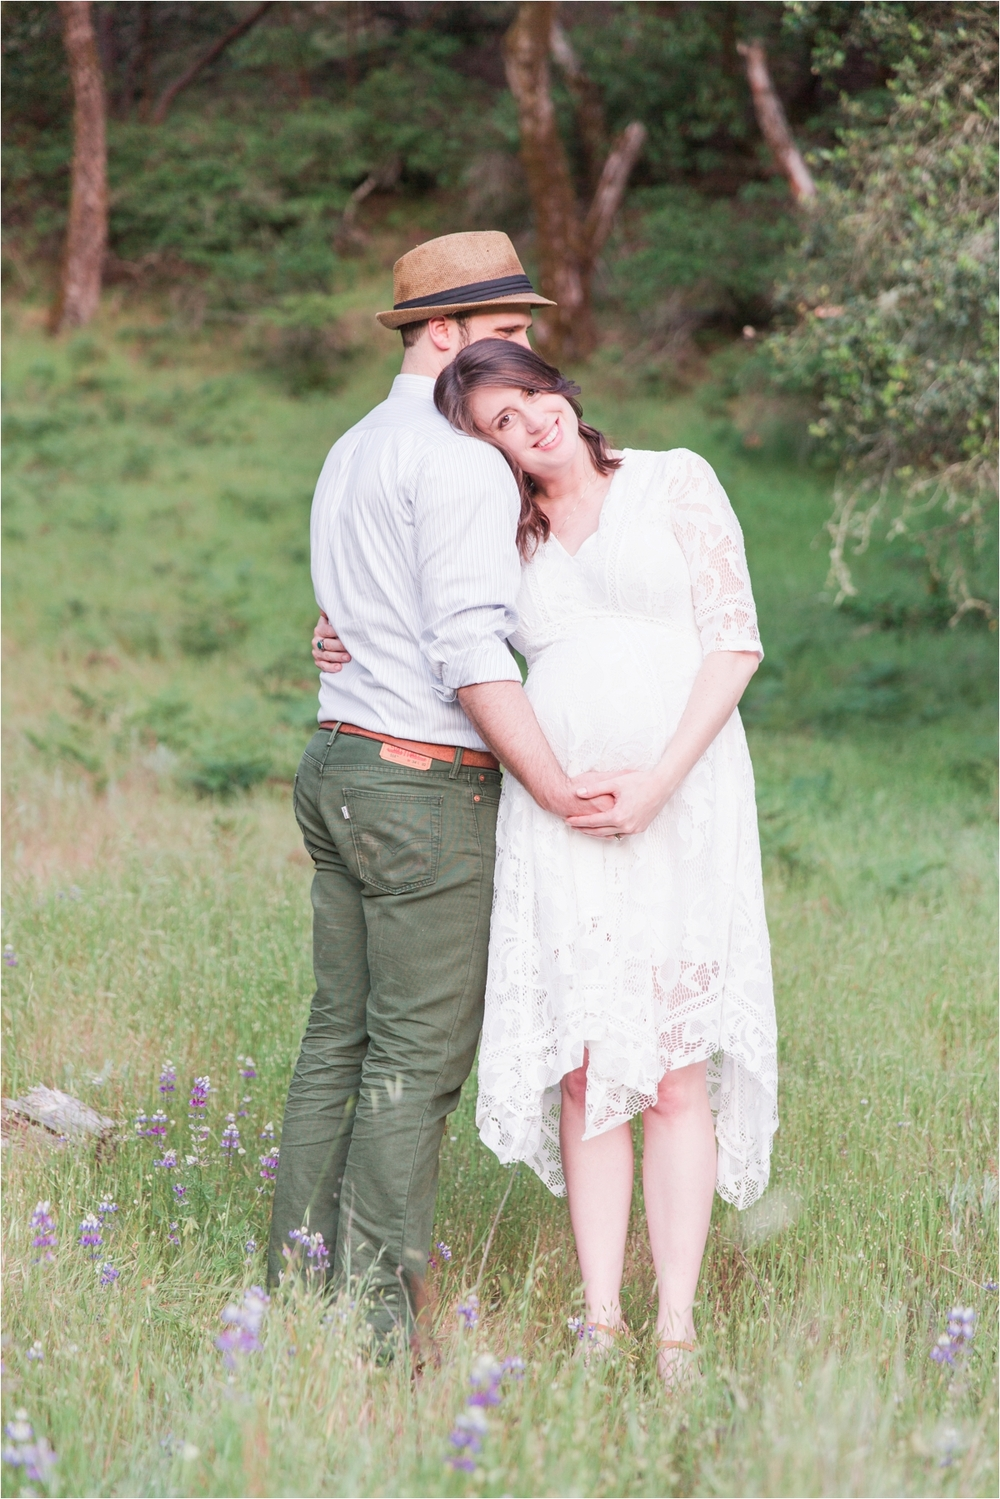 Rustic maternity portraits at Quail Hollow Ranch in Felton, CA. Photos by Briana Calderon Photography based in the San Francisco Bay Area, California.